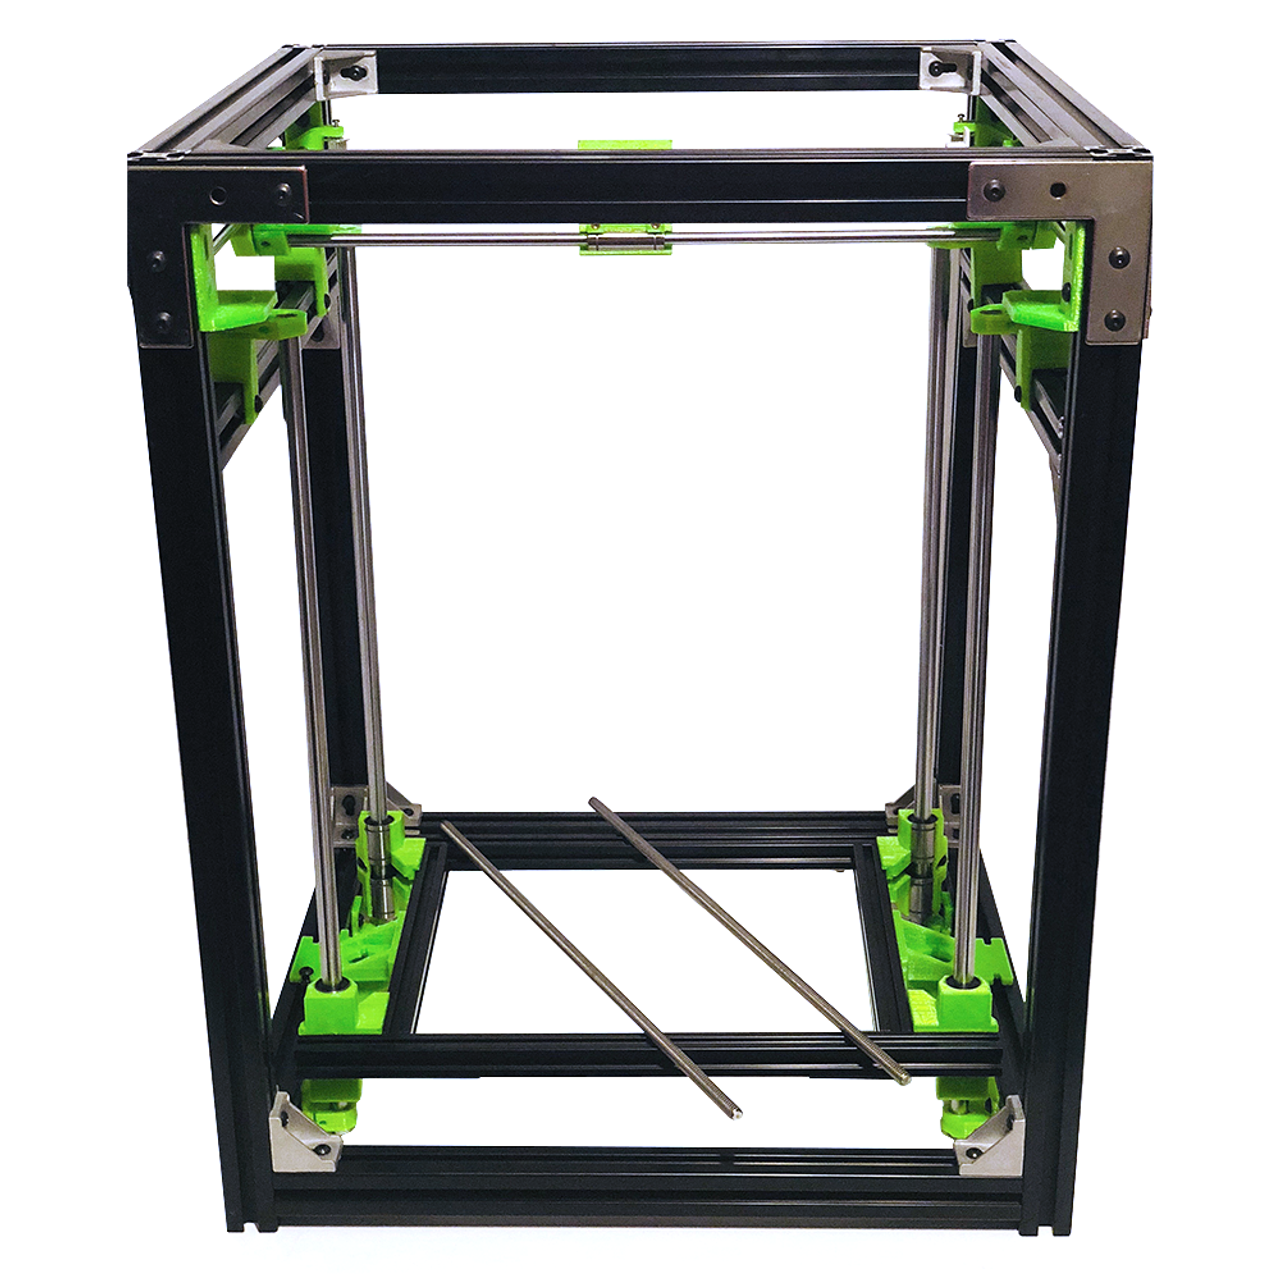 HyperCube Evolution Frame Kit 400x400x500 - ZYLtech Engineering, LLC